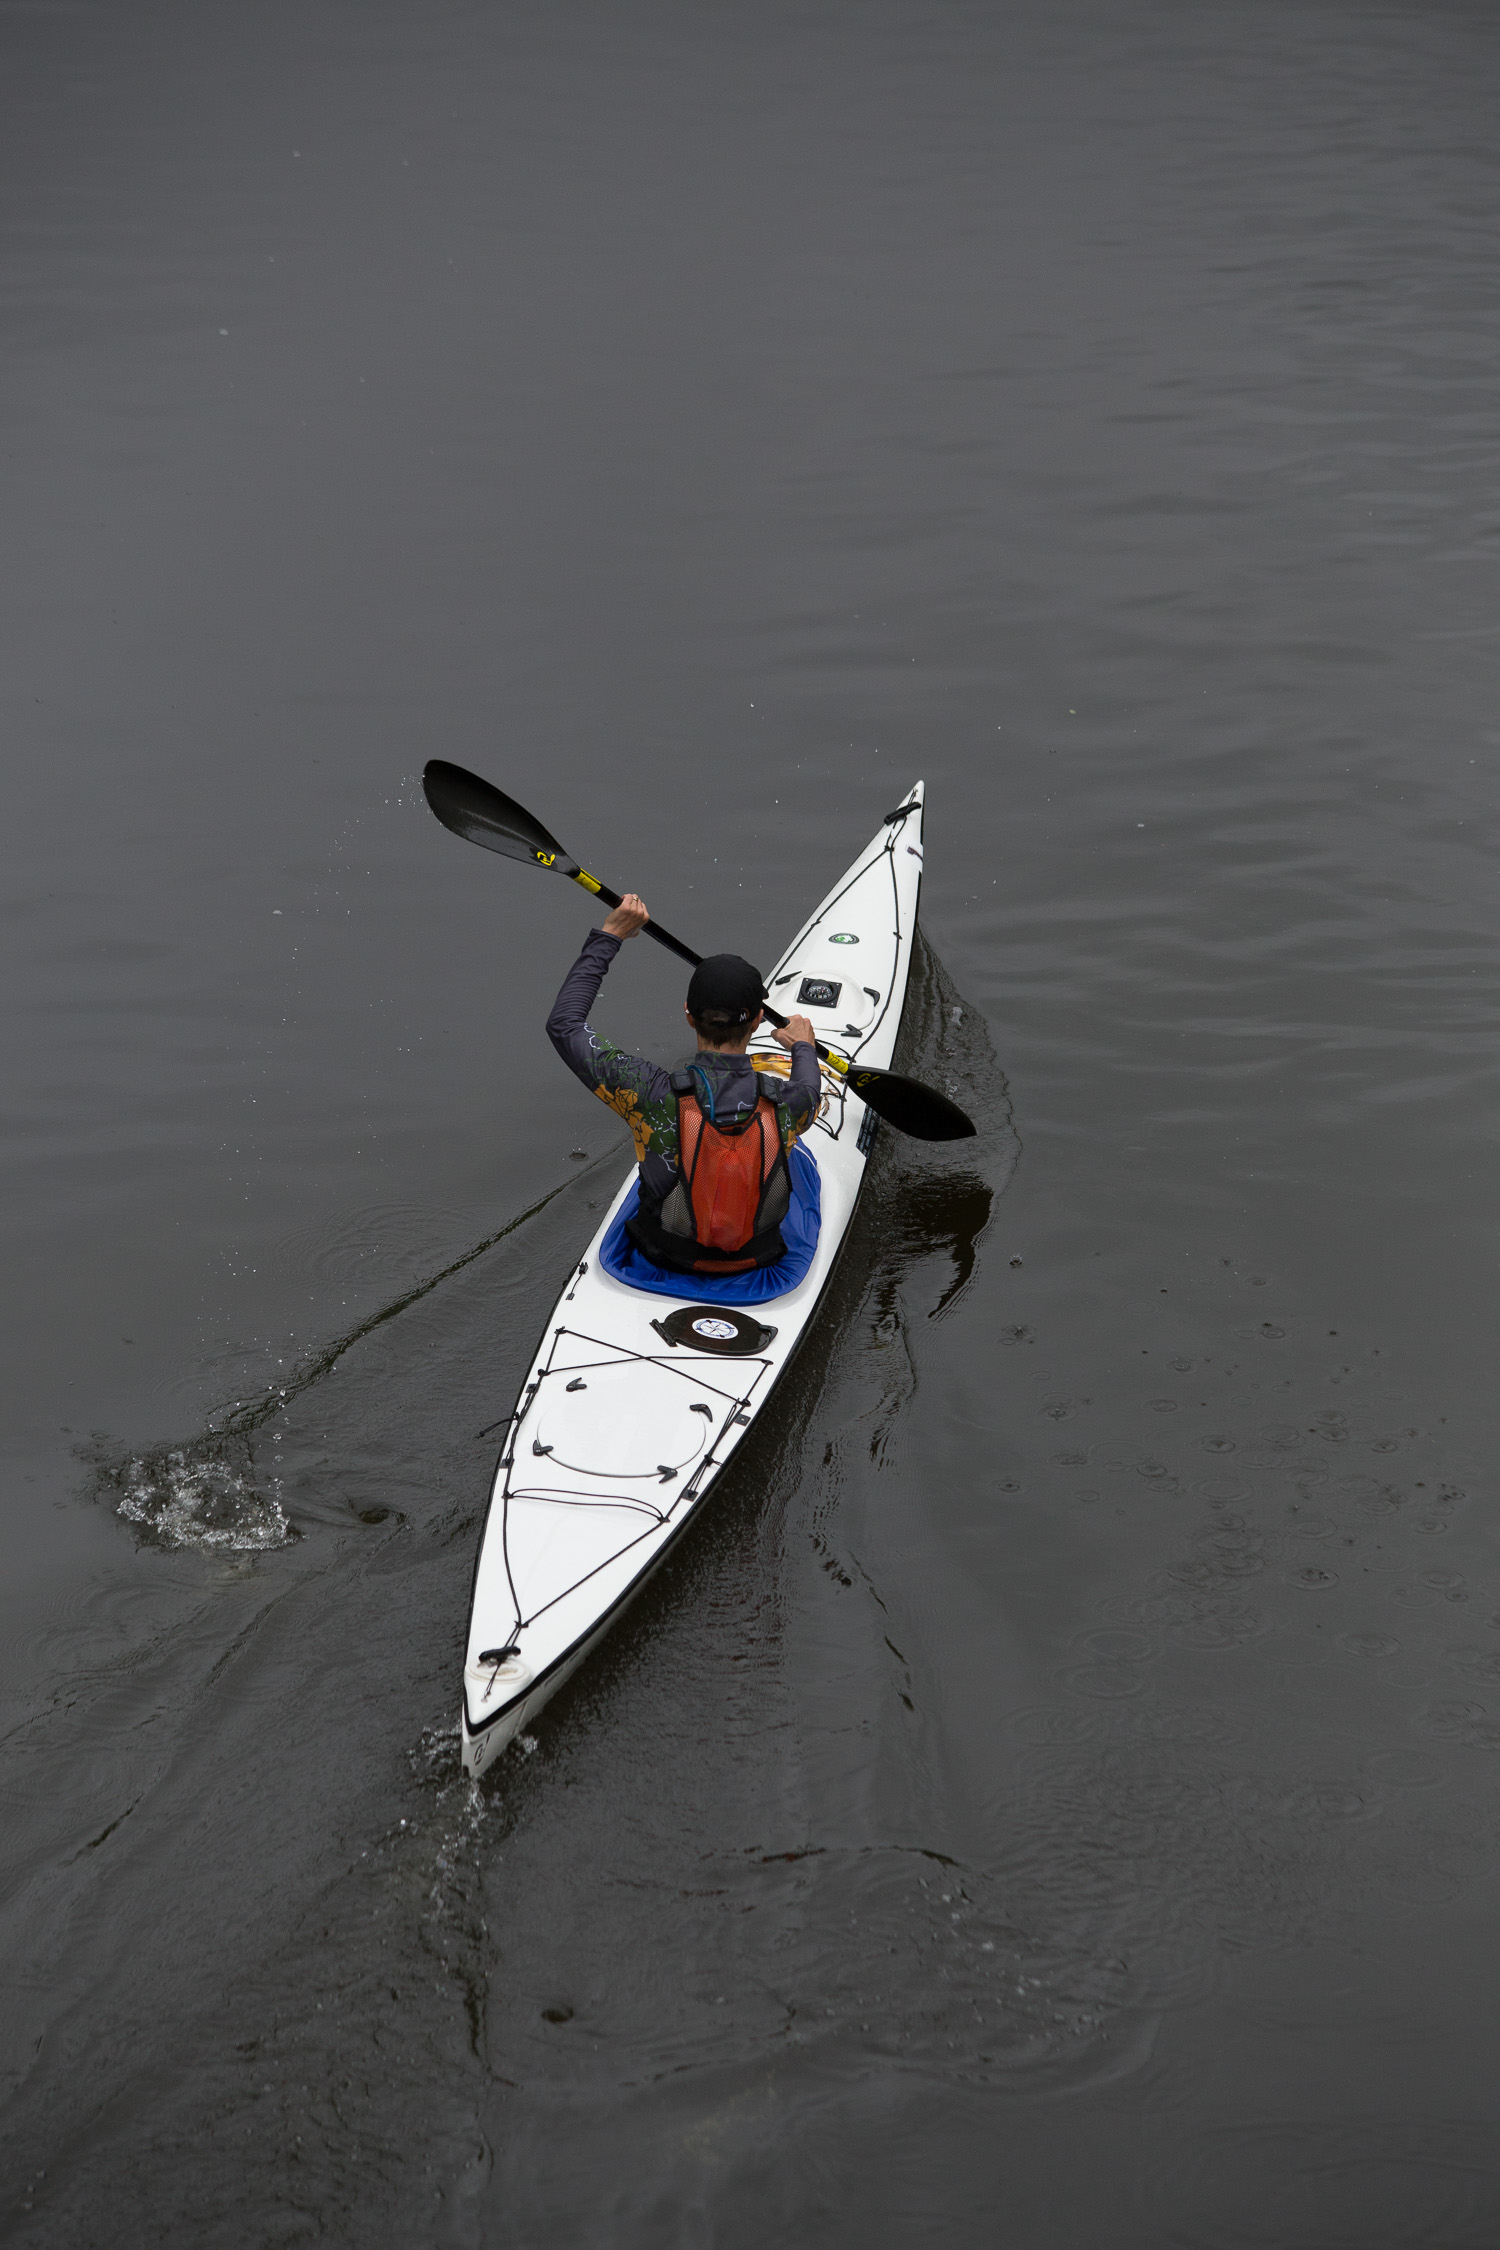 Please attach picture(s) of your boat. (yes again!) Distance shots are good for identifying you from afar. And of you!  C'mon, this race is about people too.   Let's see some headshots.